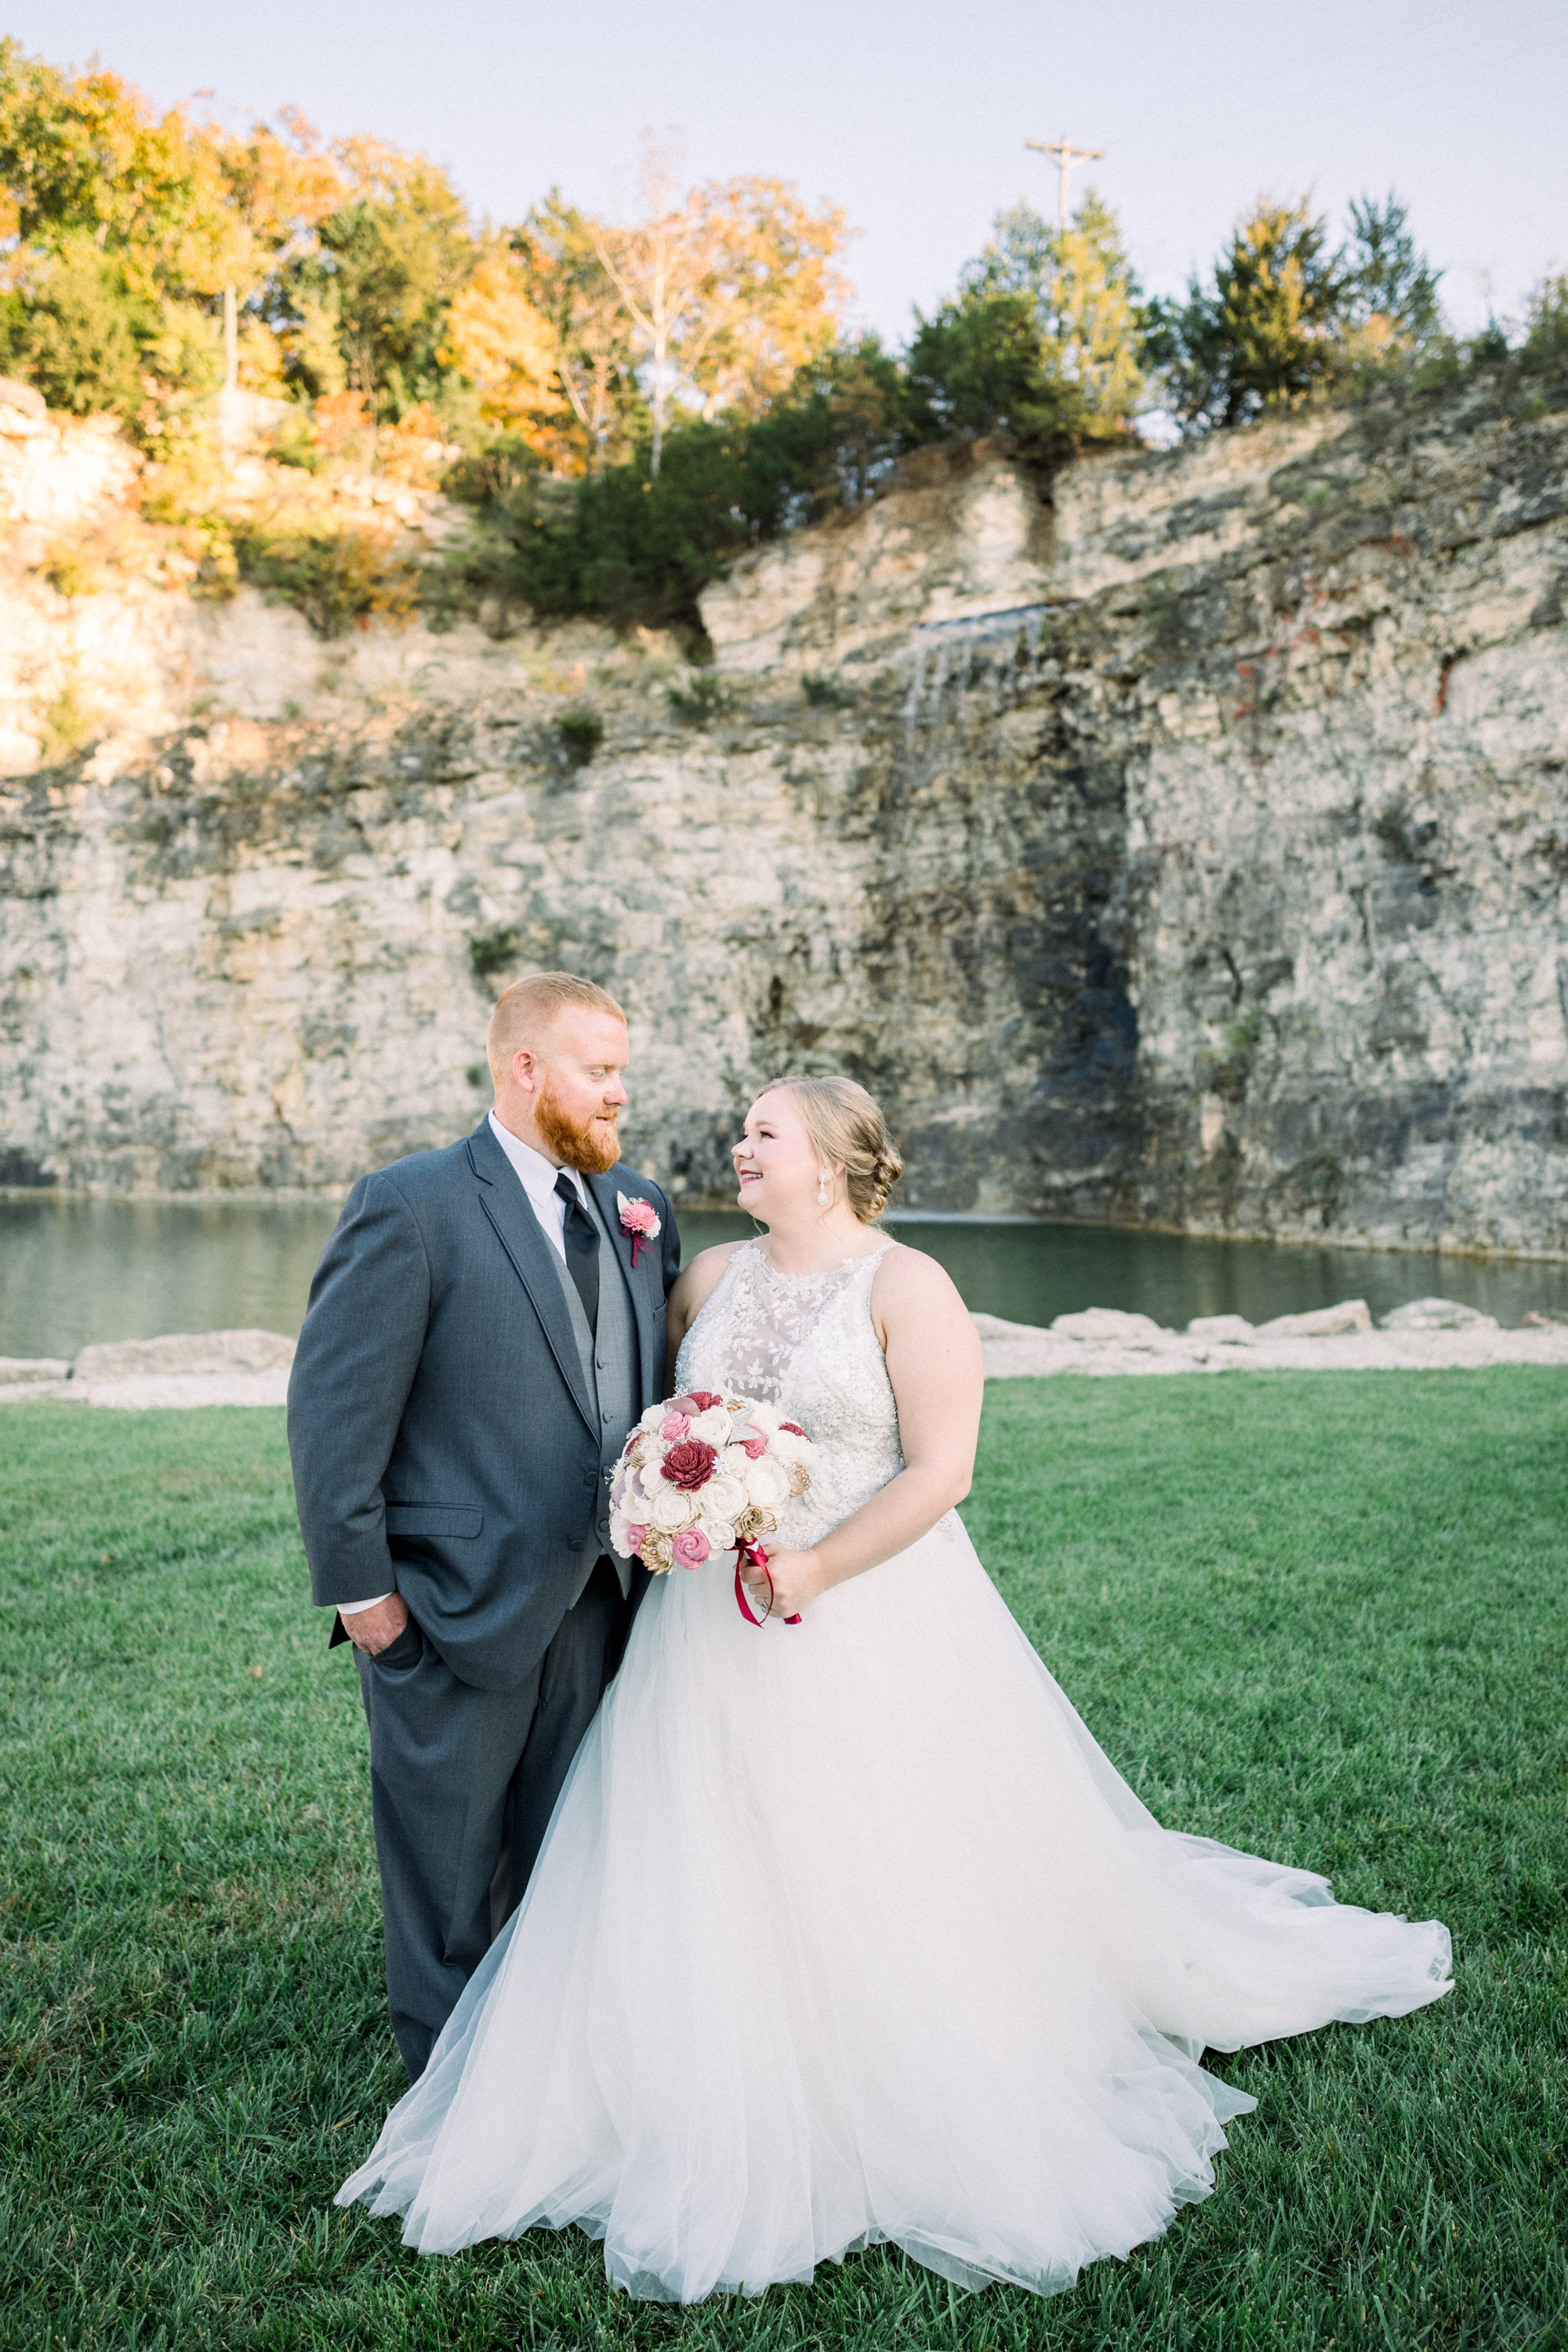 Savanah + Jared (411 of 972).jpg